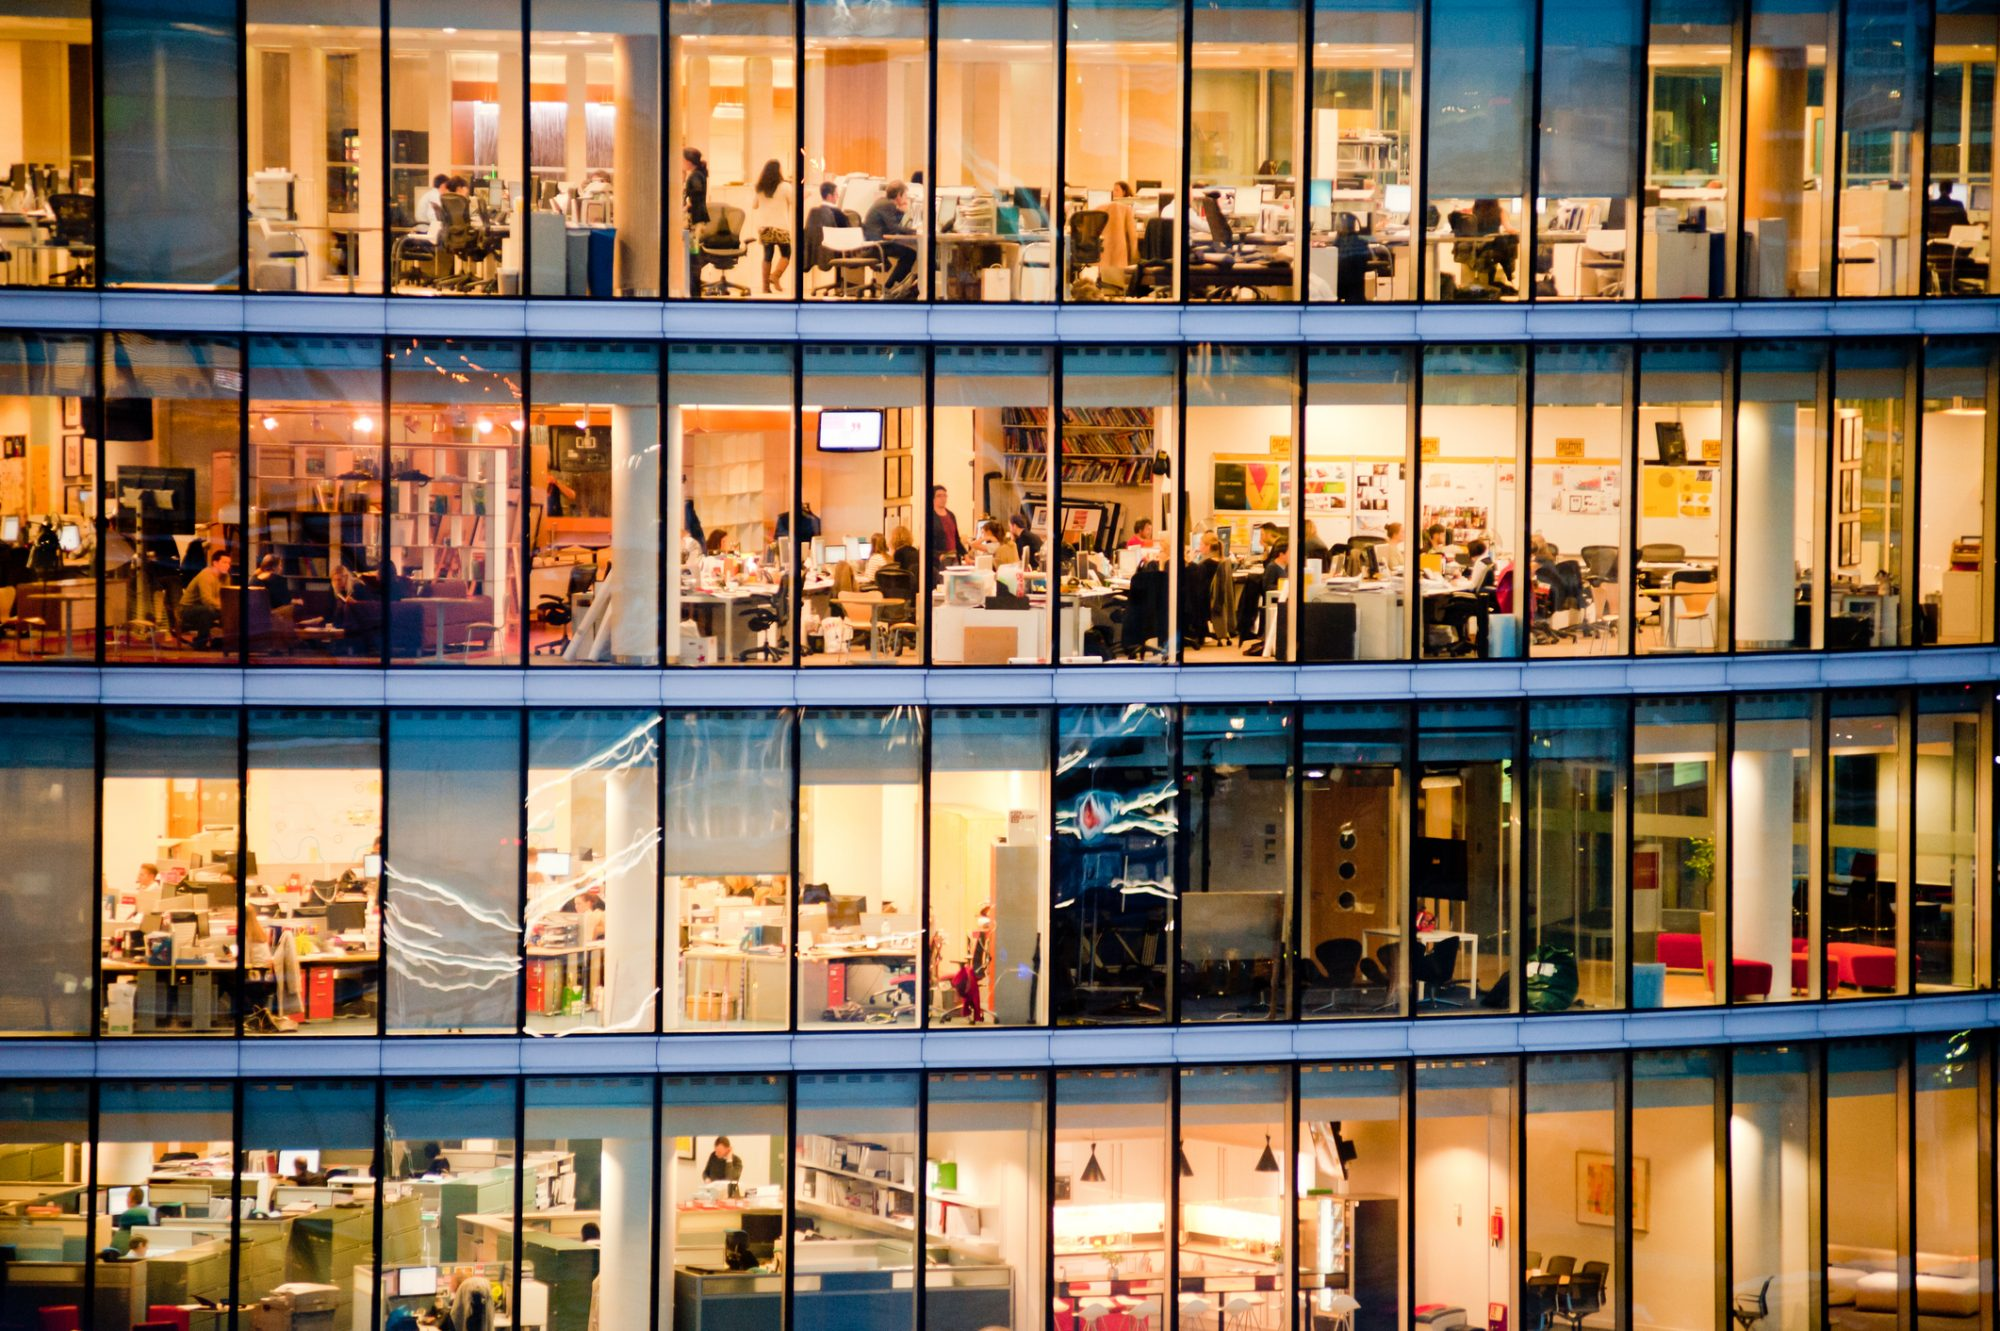 What role do smart buildings play in the new normal?